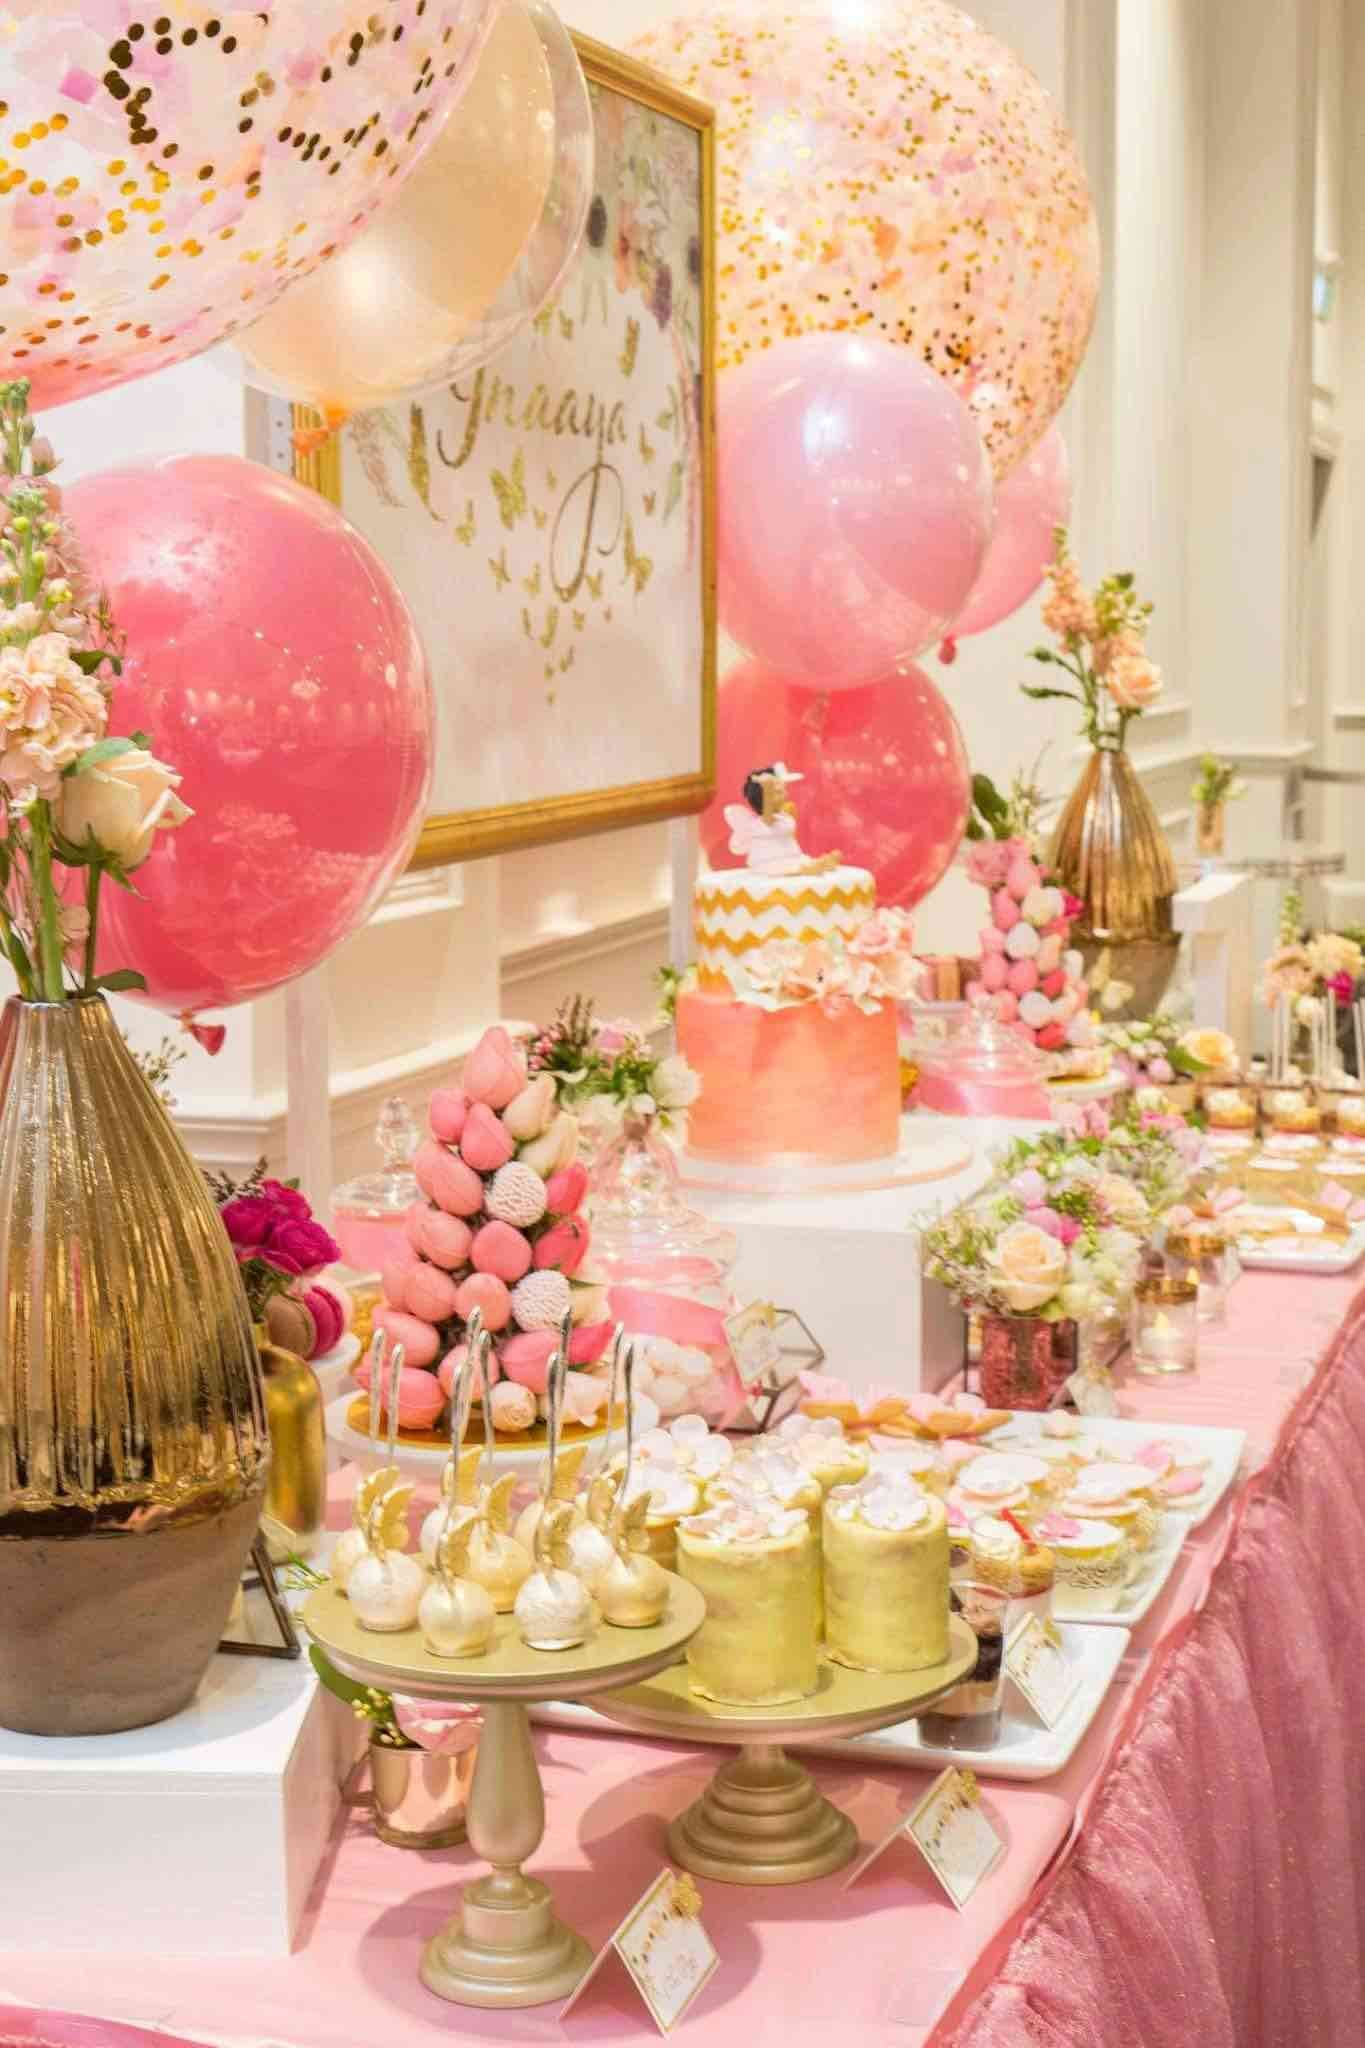 Bridal Shower 101: Everything You Need to Know | Bridal ...